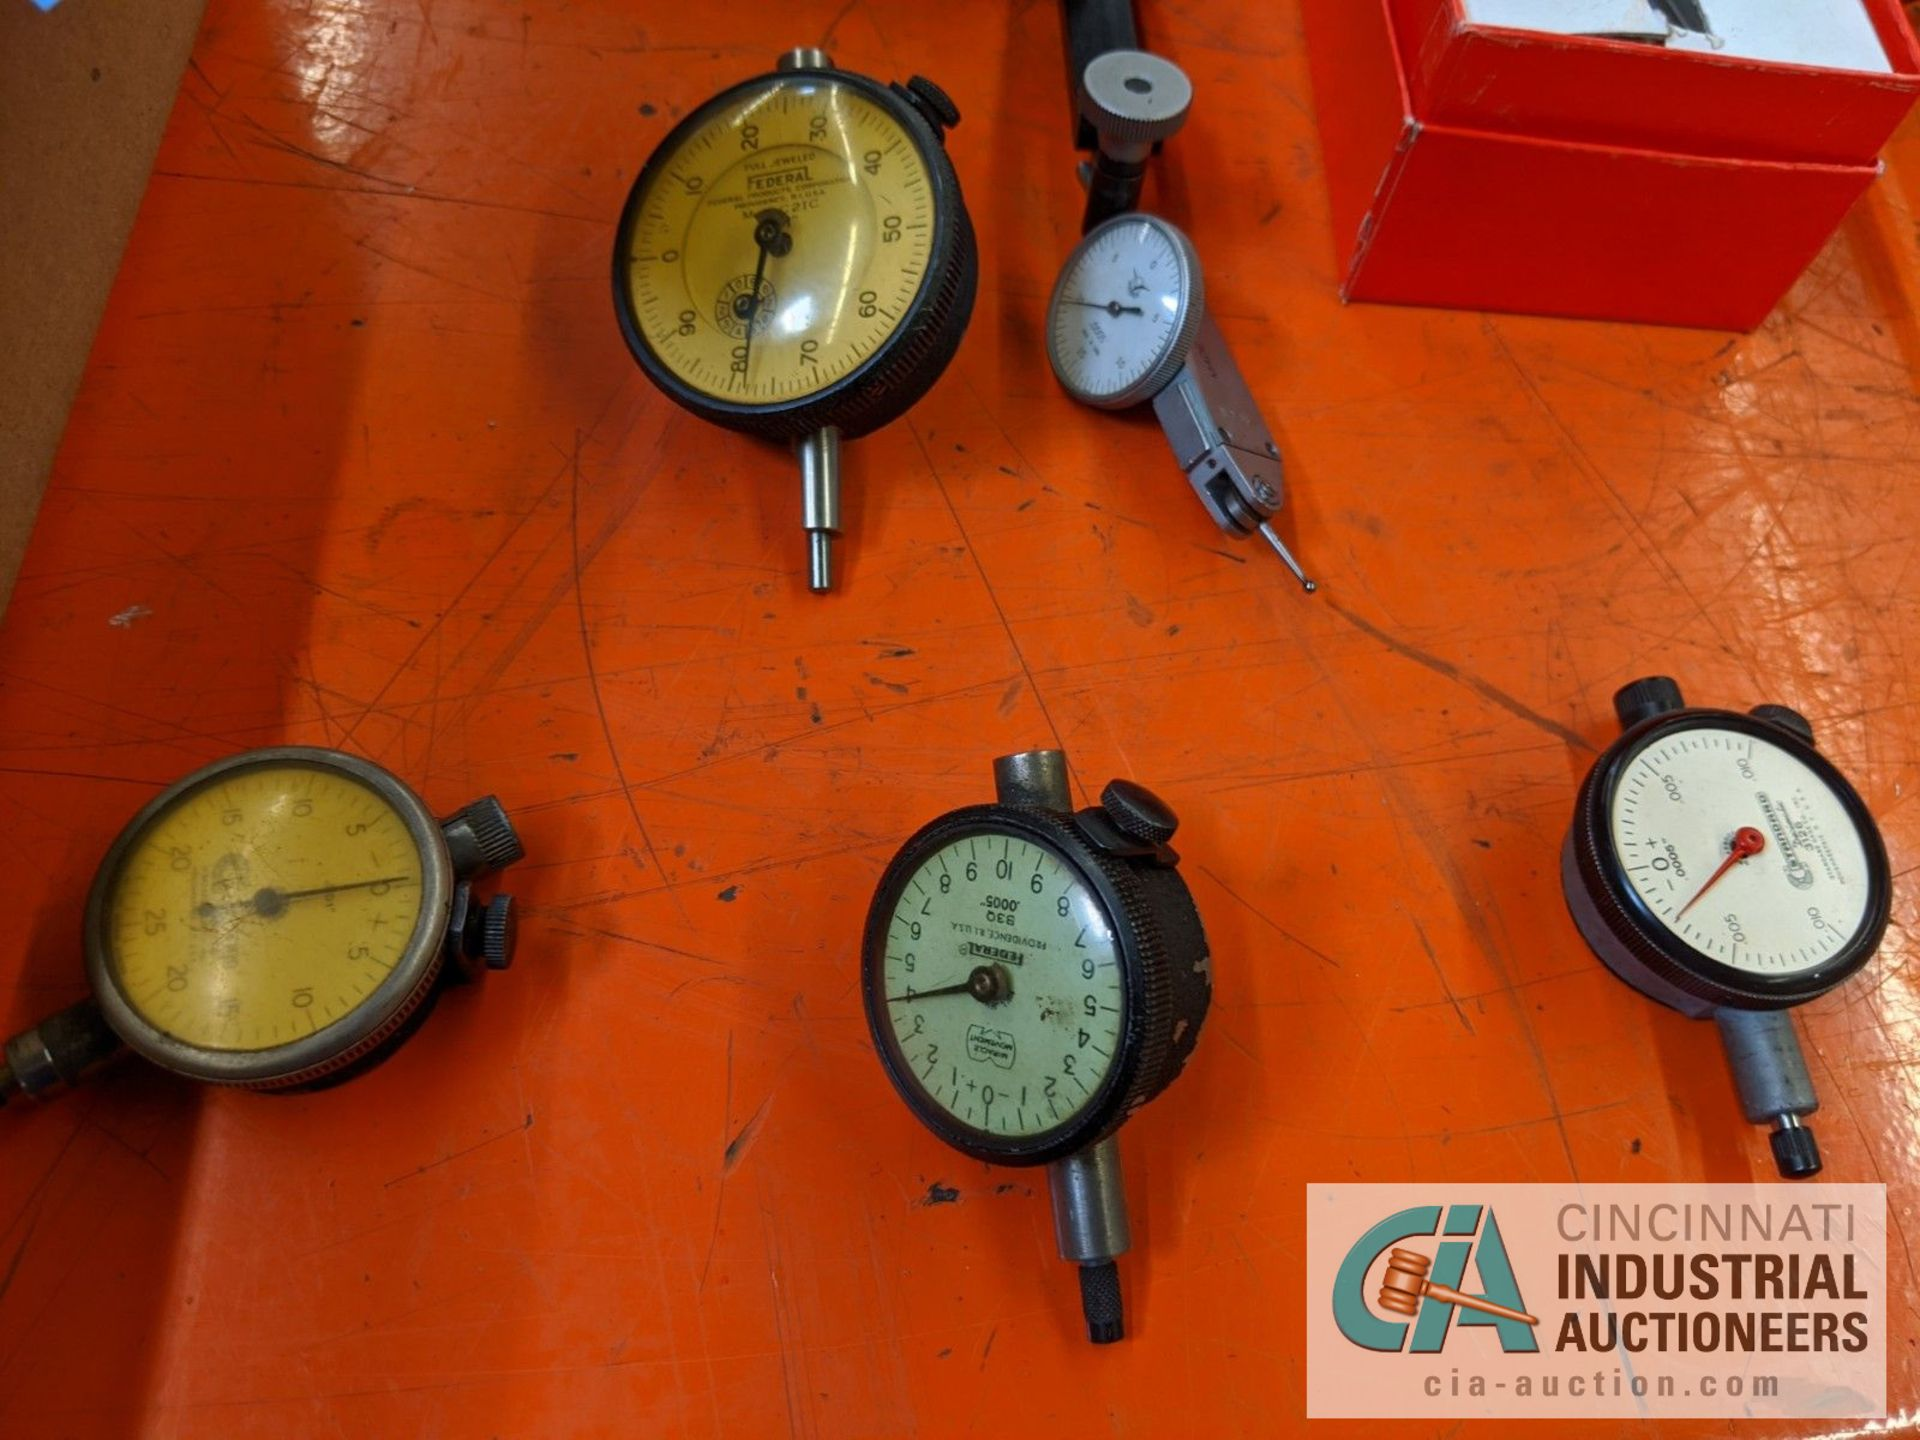 (LOT) ASSORTED DIAL INDICATORS - Image 6 of 7